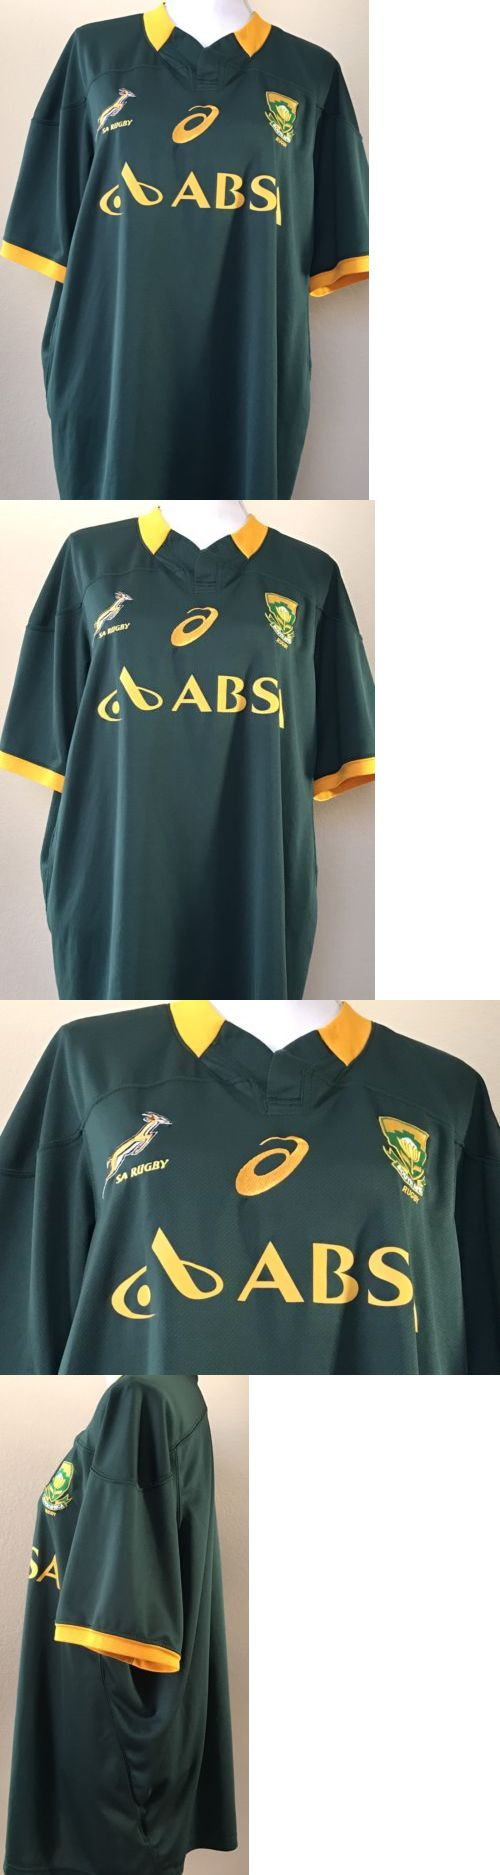 Rugby 21563: Asics South Africa Springboks Rugby Jersey Size 3Xl Nwot Authentic Approved -> BUY IT NOW ONLY: $75.99 on eBay!